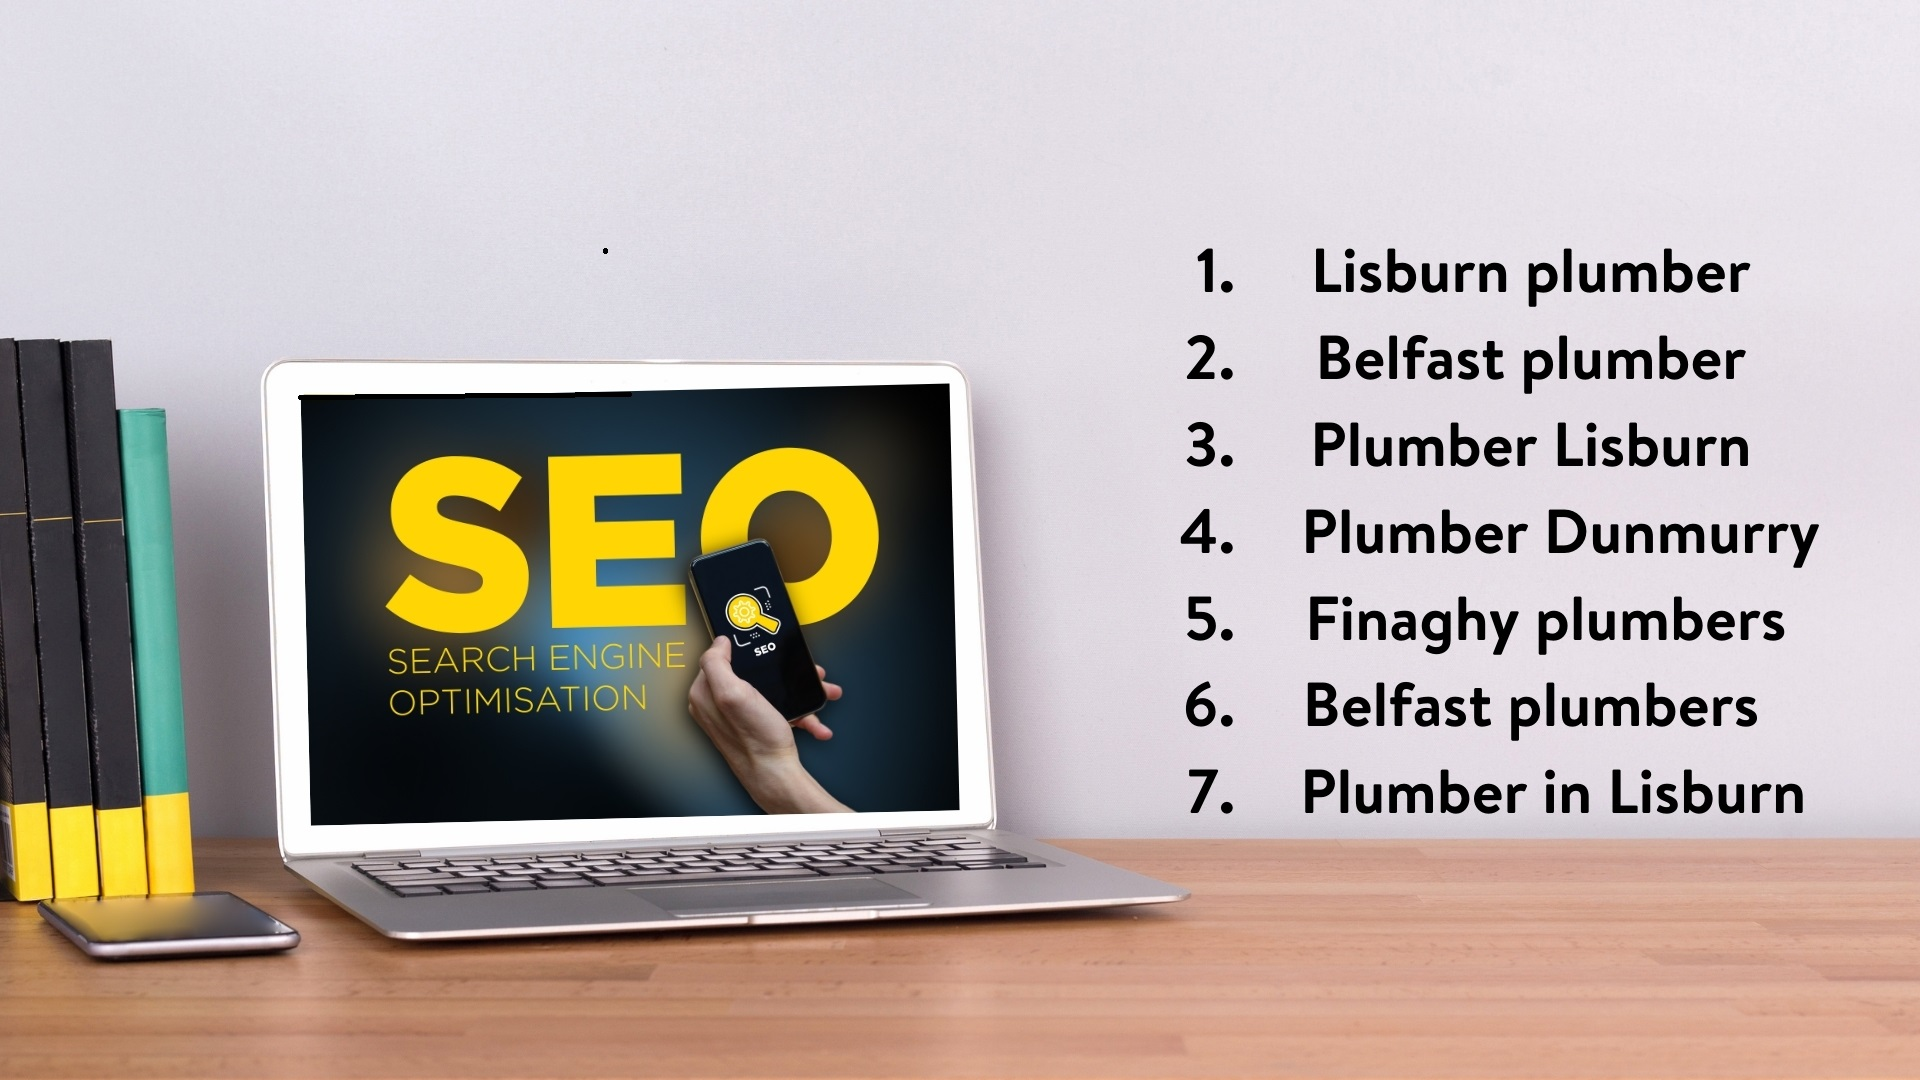 Use keywords and key phrases throughout your content to search engine optimise - Website content writer Northern Ireland